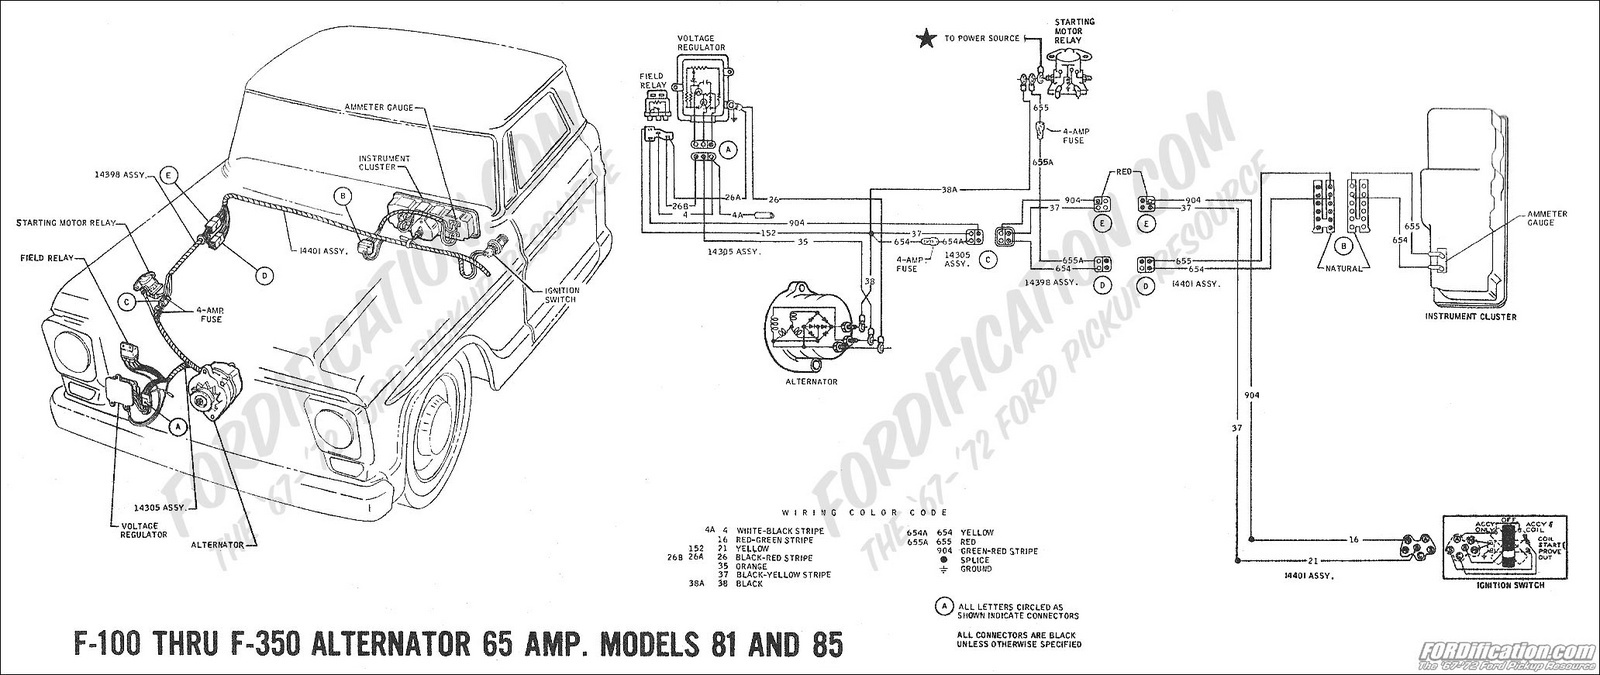 Dd15 Engine Wiring Diagram on volvo vnl wiring diagram